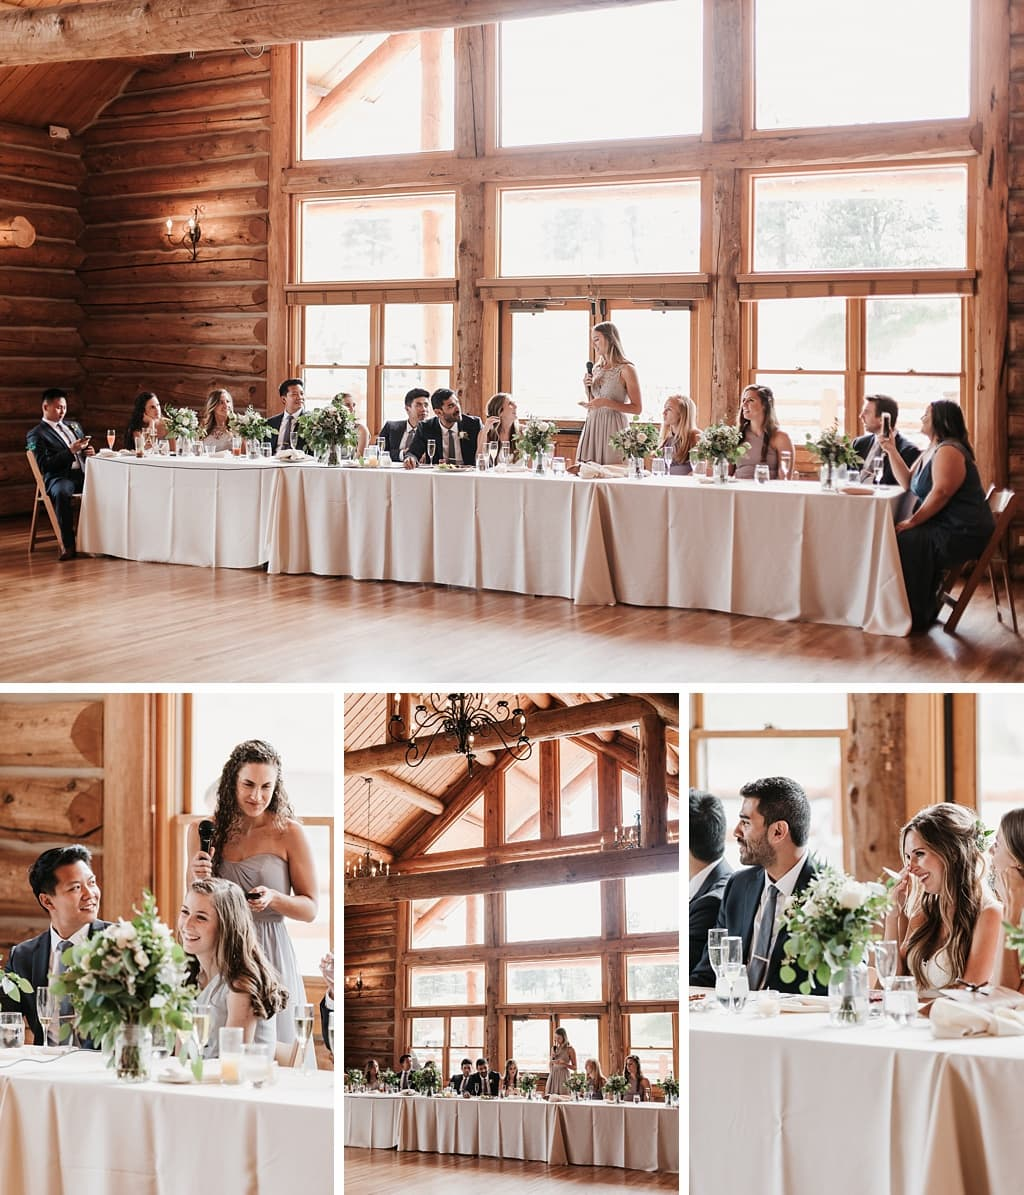 Evergreen Lake House Brunch Wedding Colorado bridal party head table toasts speeches bride crying